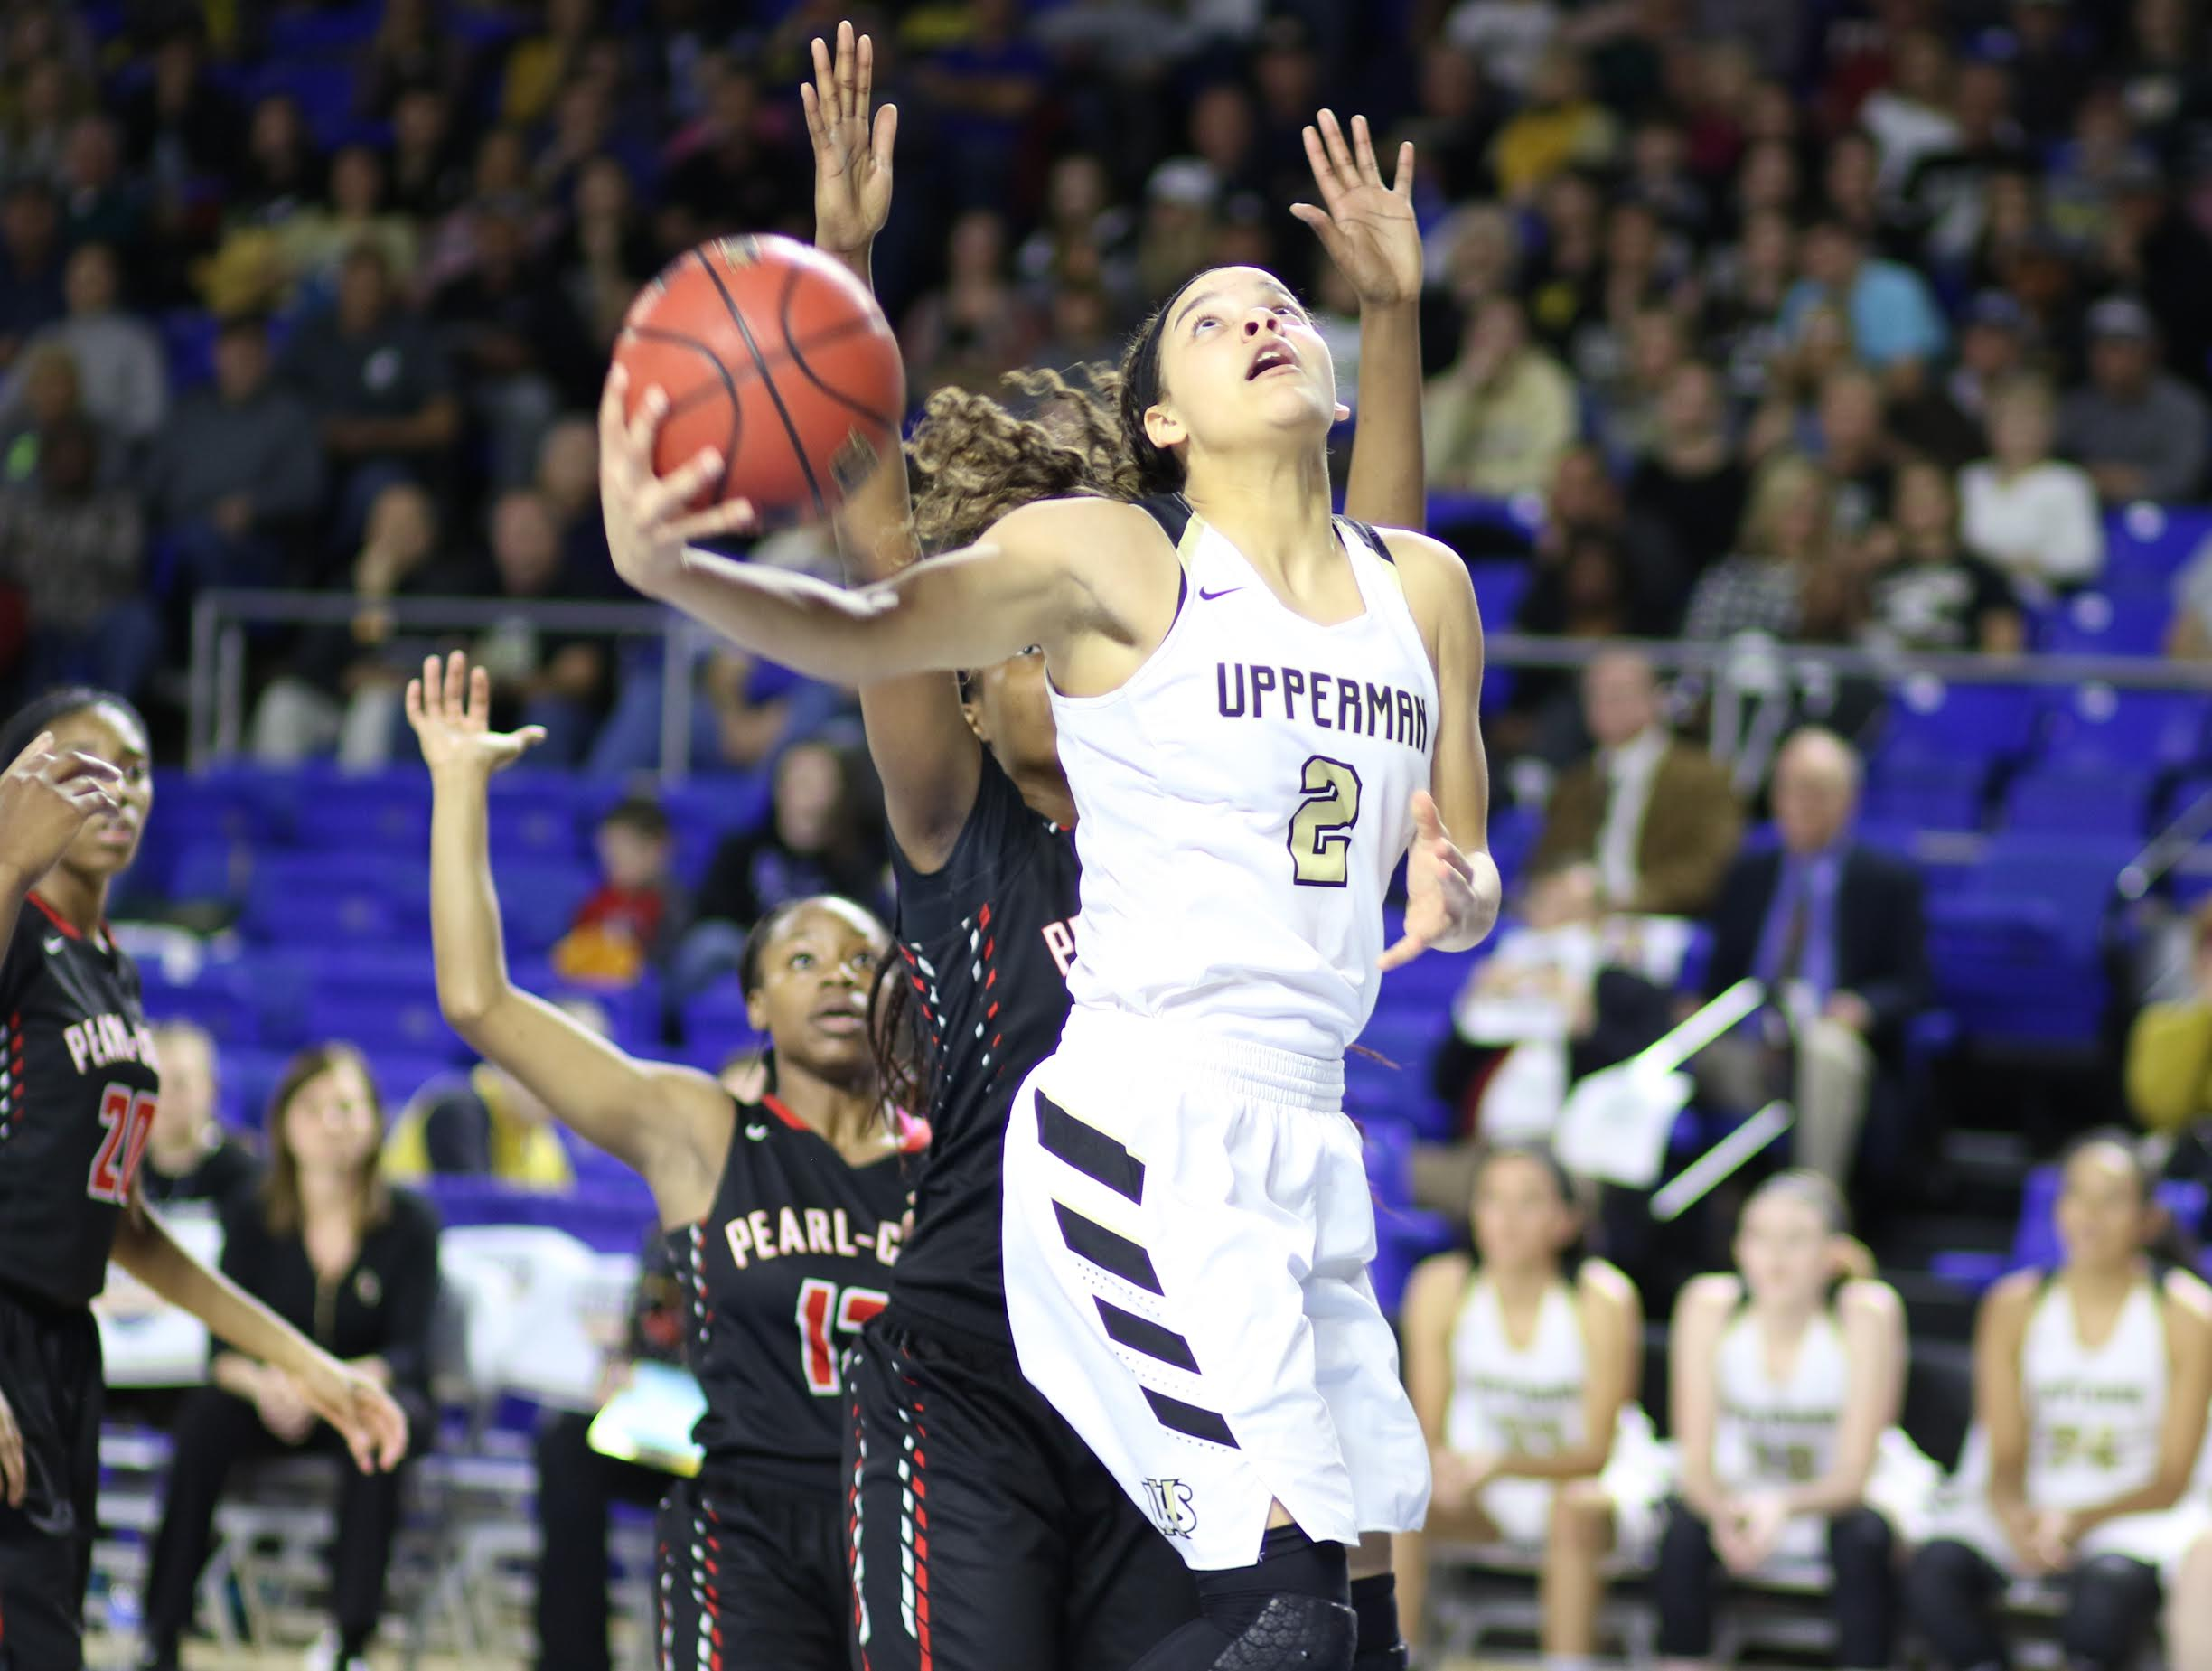 Upperman's Akira Levy led the Lady Bears to the Class AA state championship. (Photo credit to Scott Wilson, Cookeville Herald-Citizen)